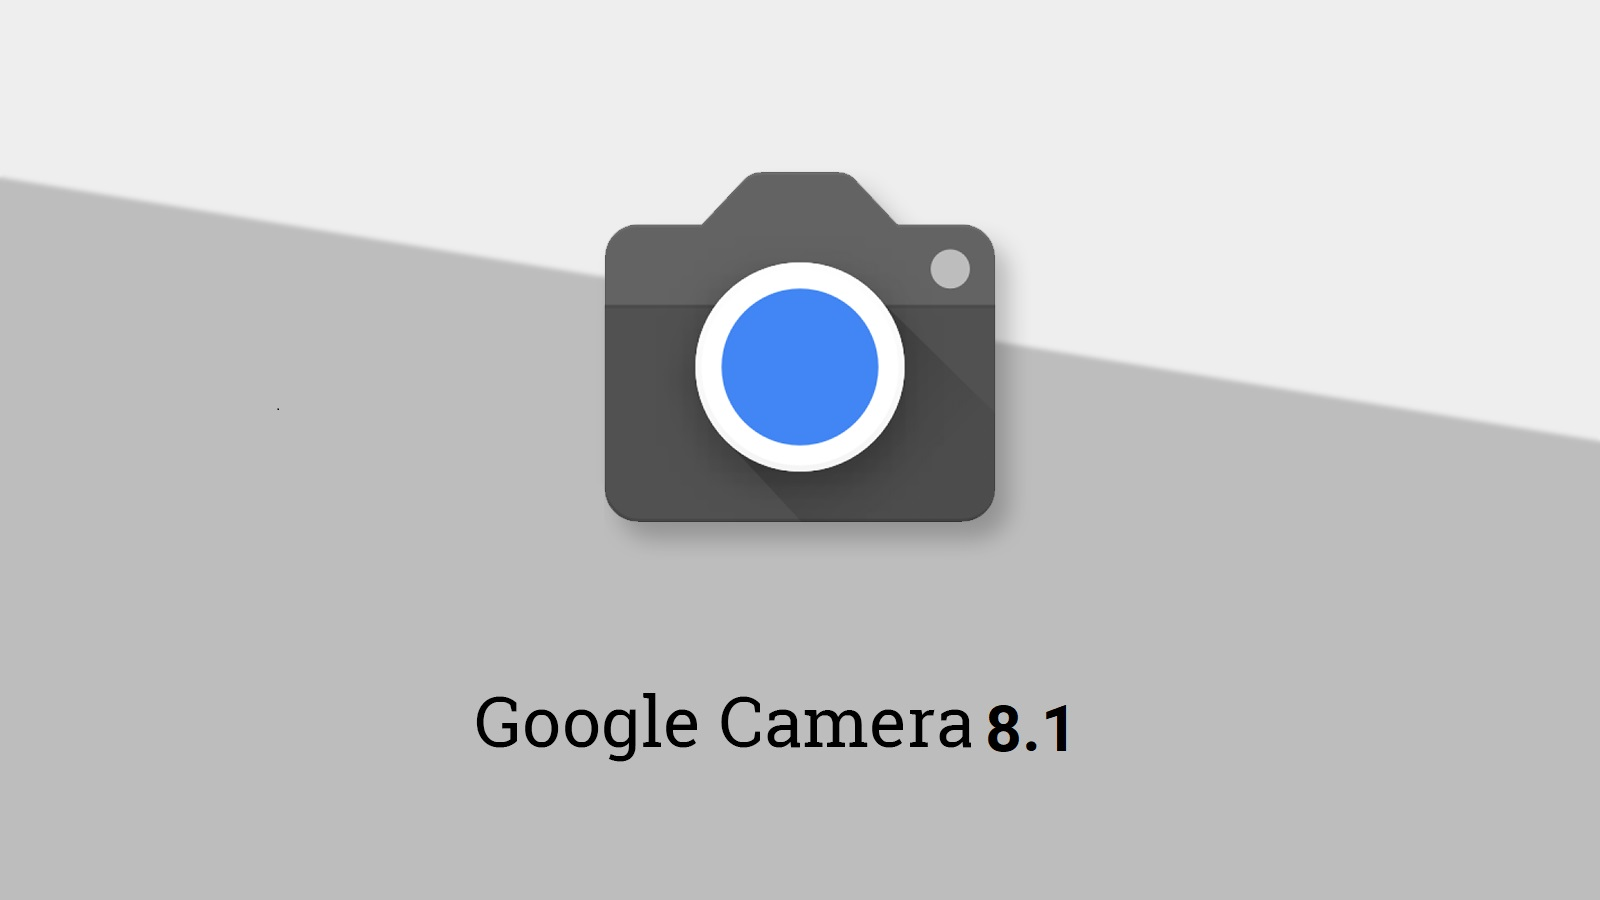 Download Google Camera 8.1.200 APK for Pixel Phones